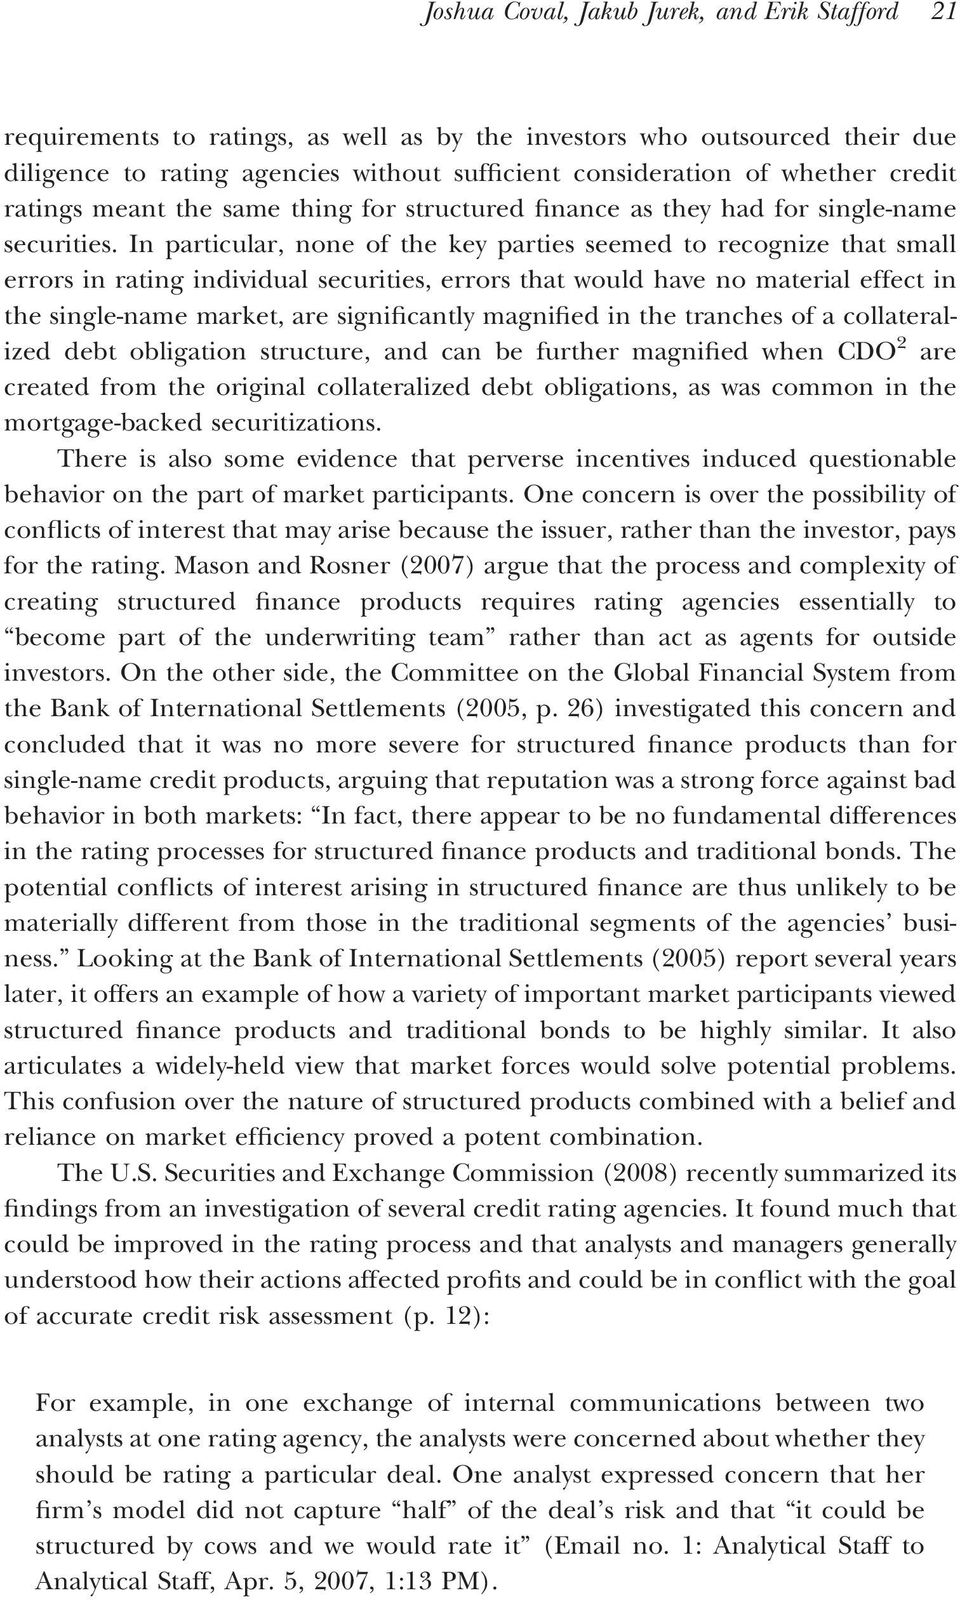 In particular, none of the key parties seemed to recognize that small errors in rating individual securities, errors that would have no material effect in the single-name market, are significantly